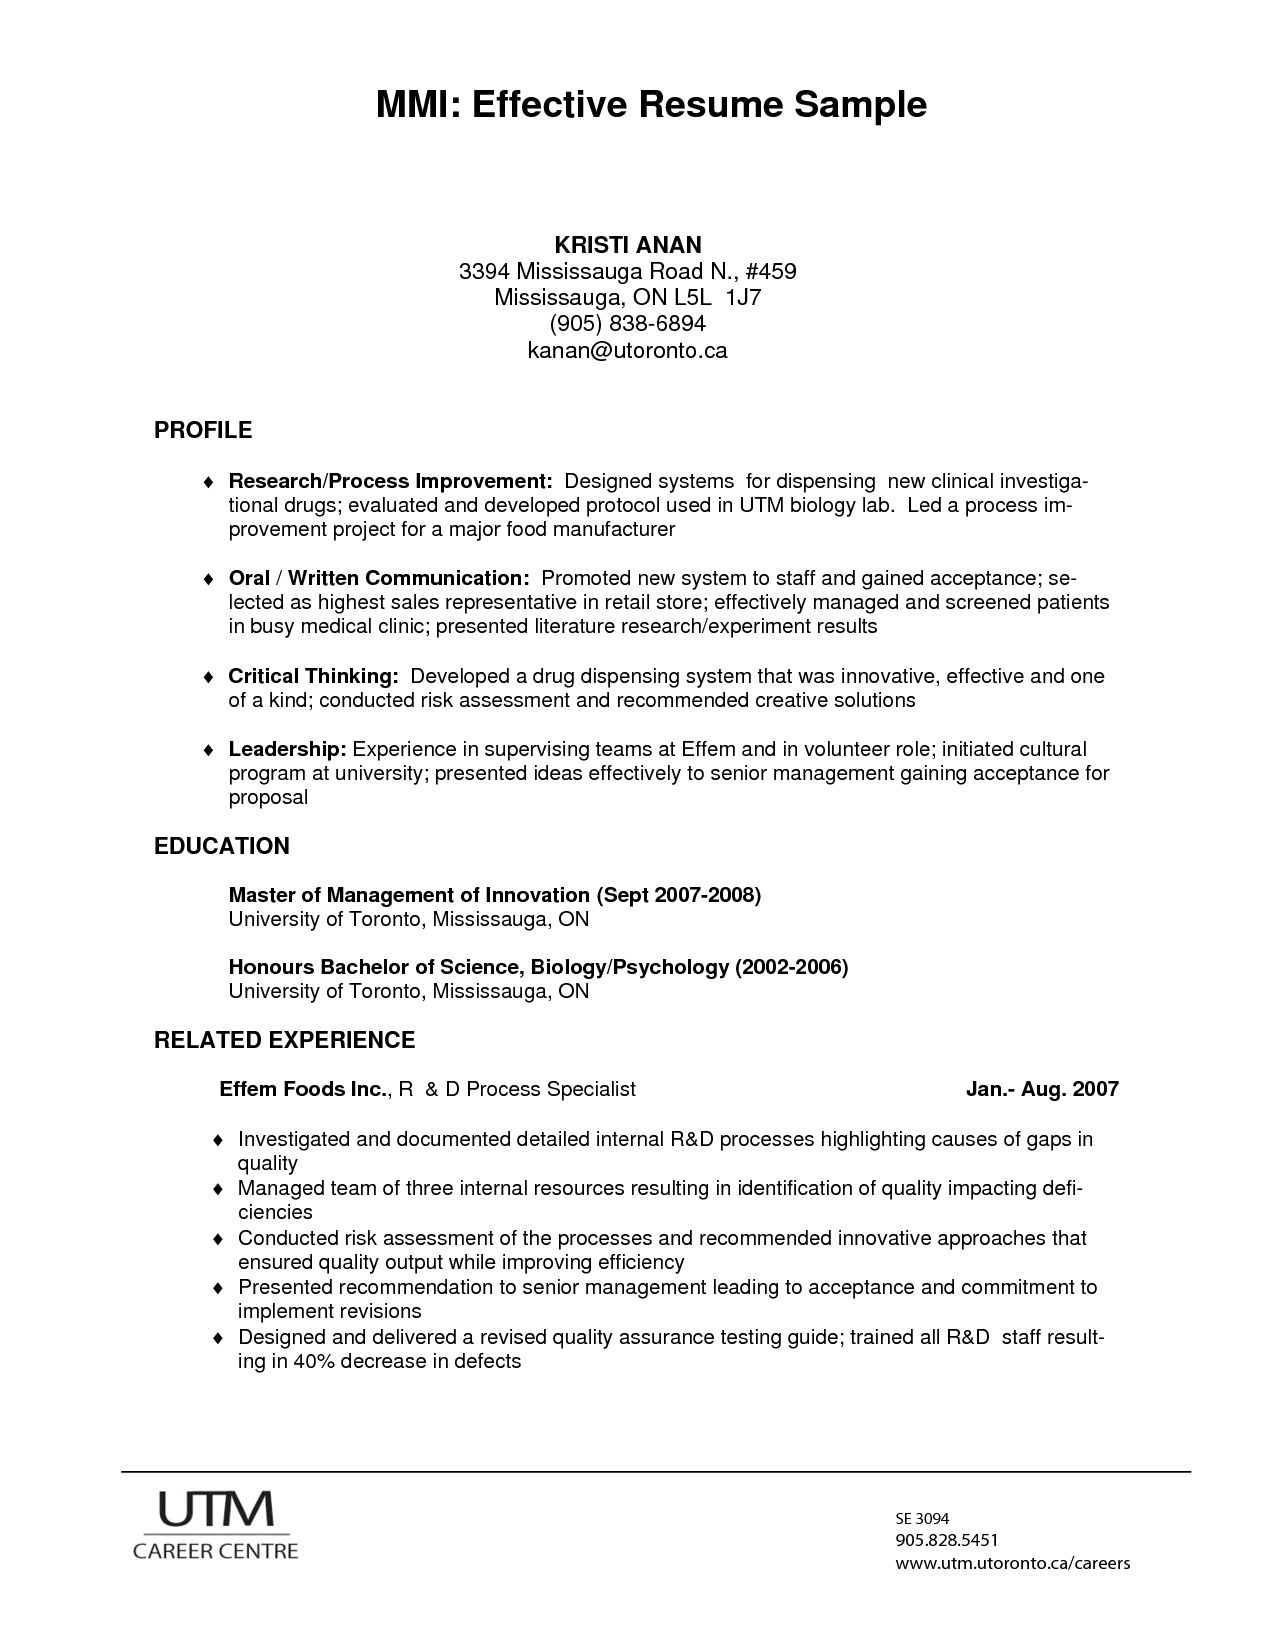 U Of T Resume Examples Effective resume, Resume writing